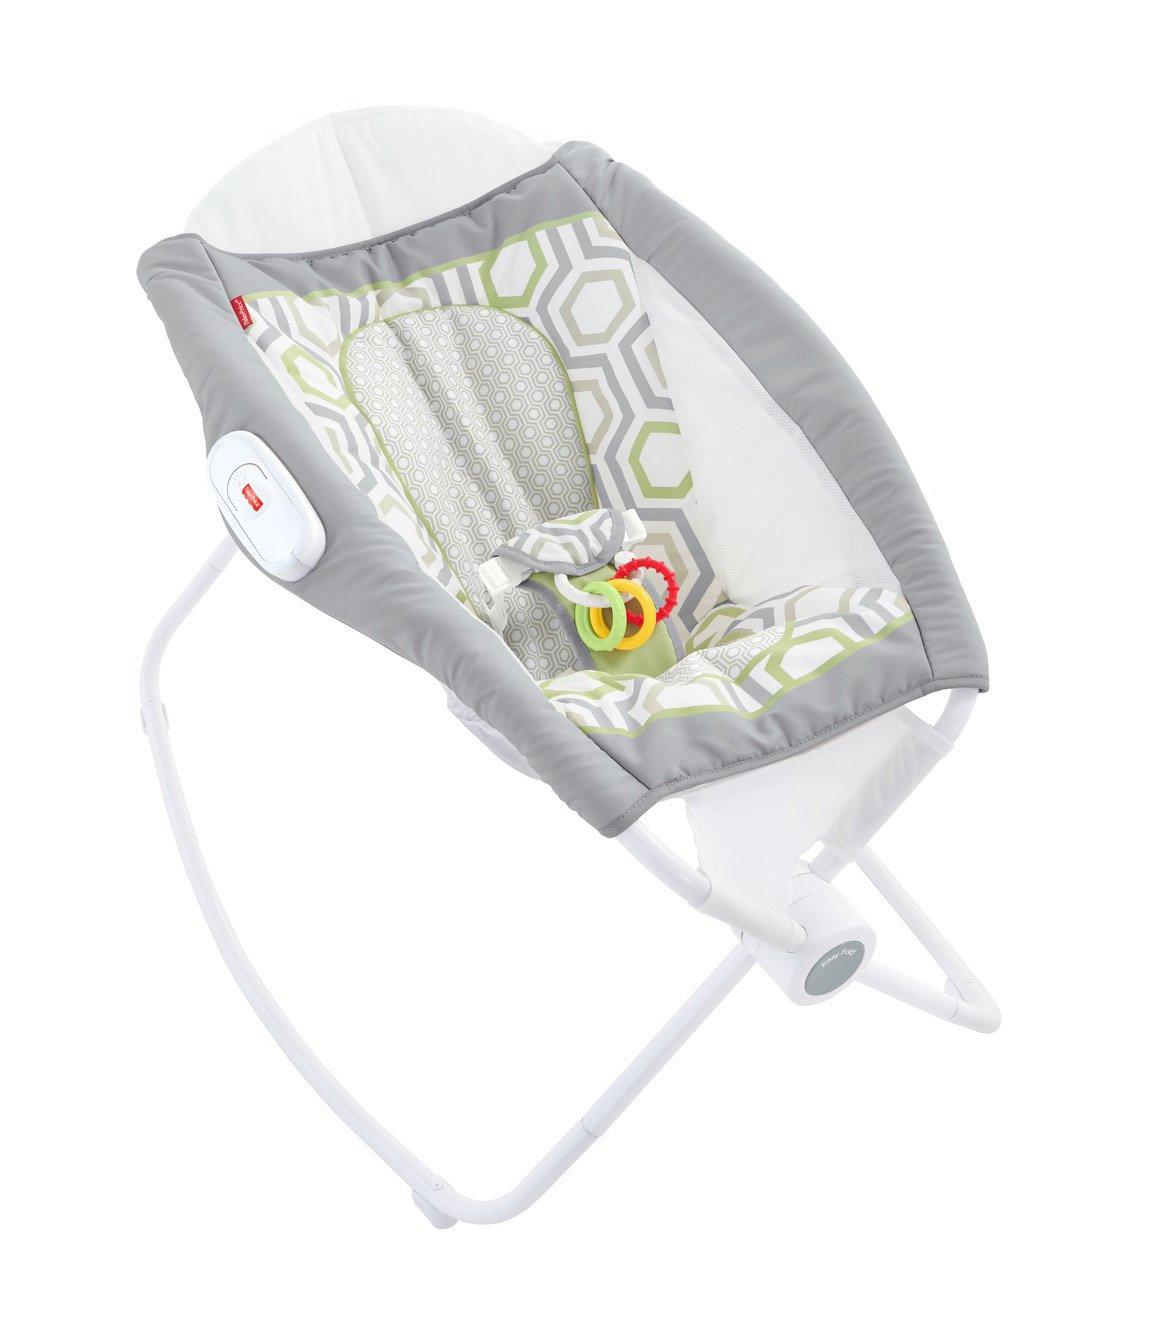 Fisher-Price Rock 'n Play Soothing Seat Amazonca/FISNE FBR79